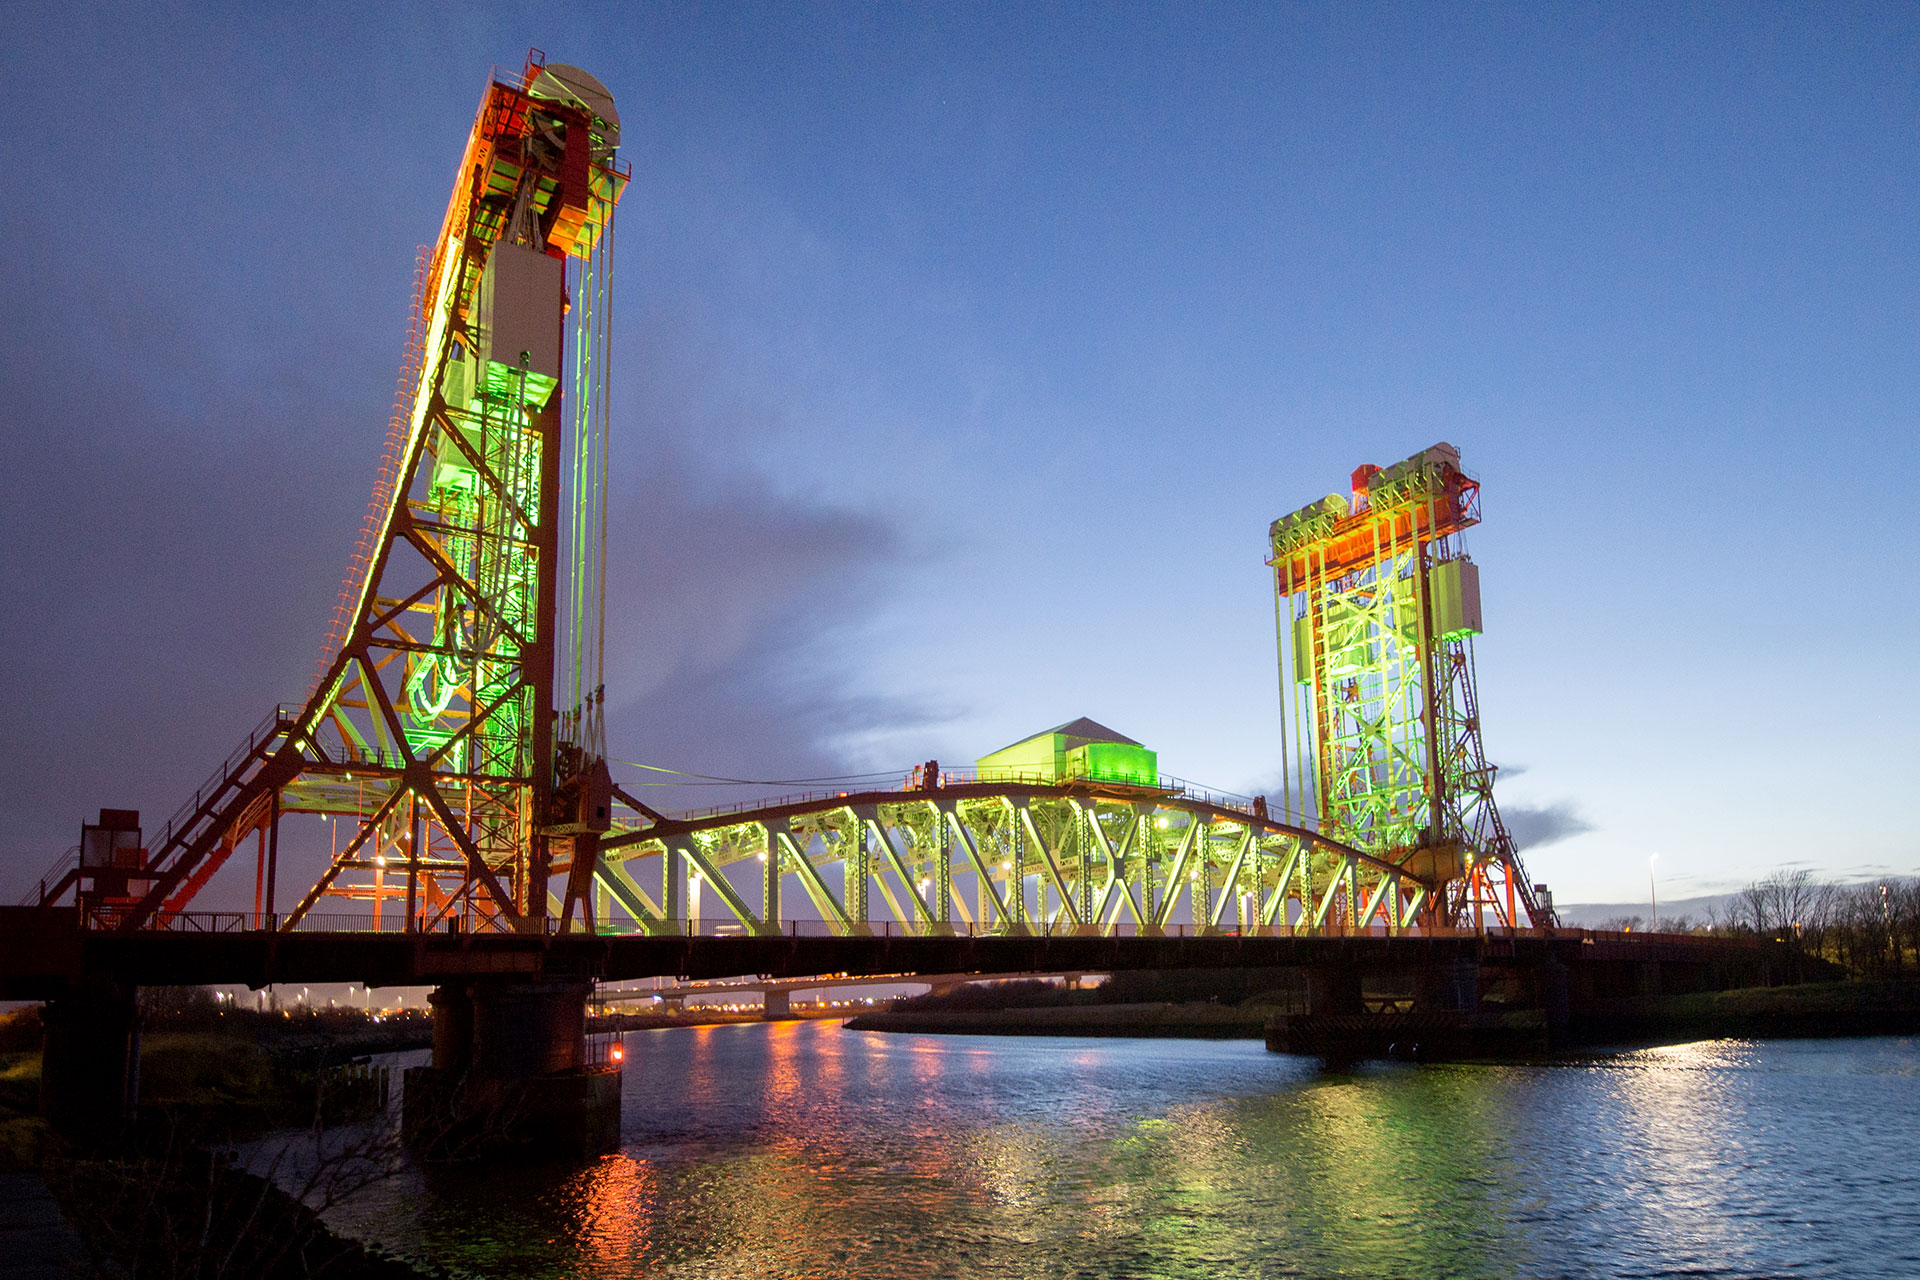 Schréder provides energy-efficient lighting upgrade to enhance this iconic landmark